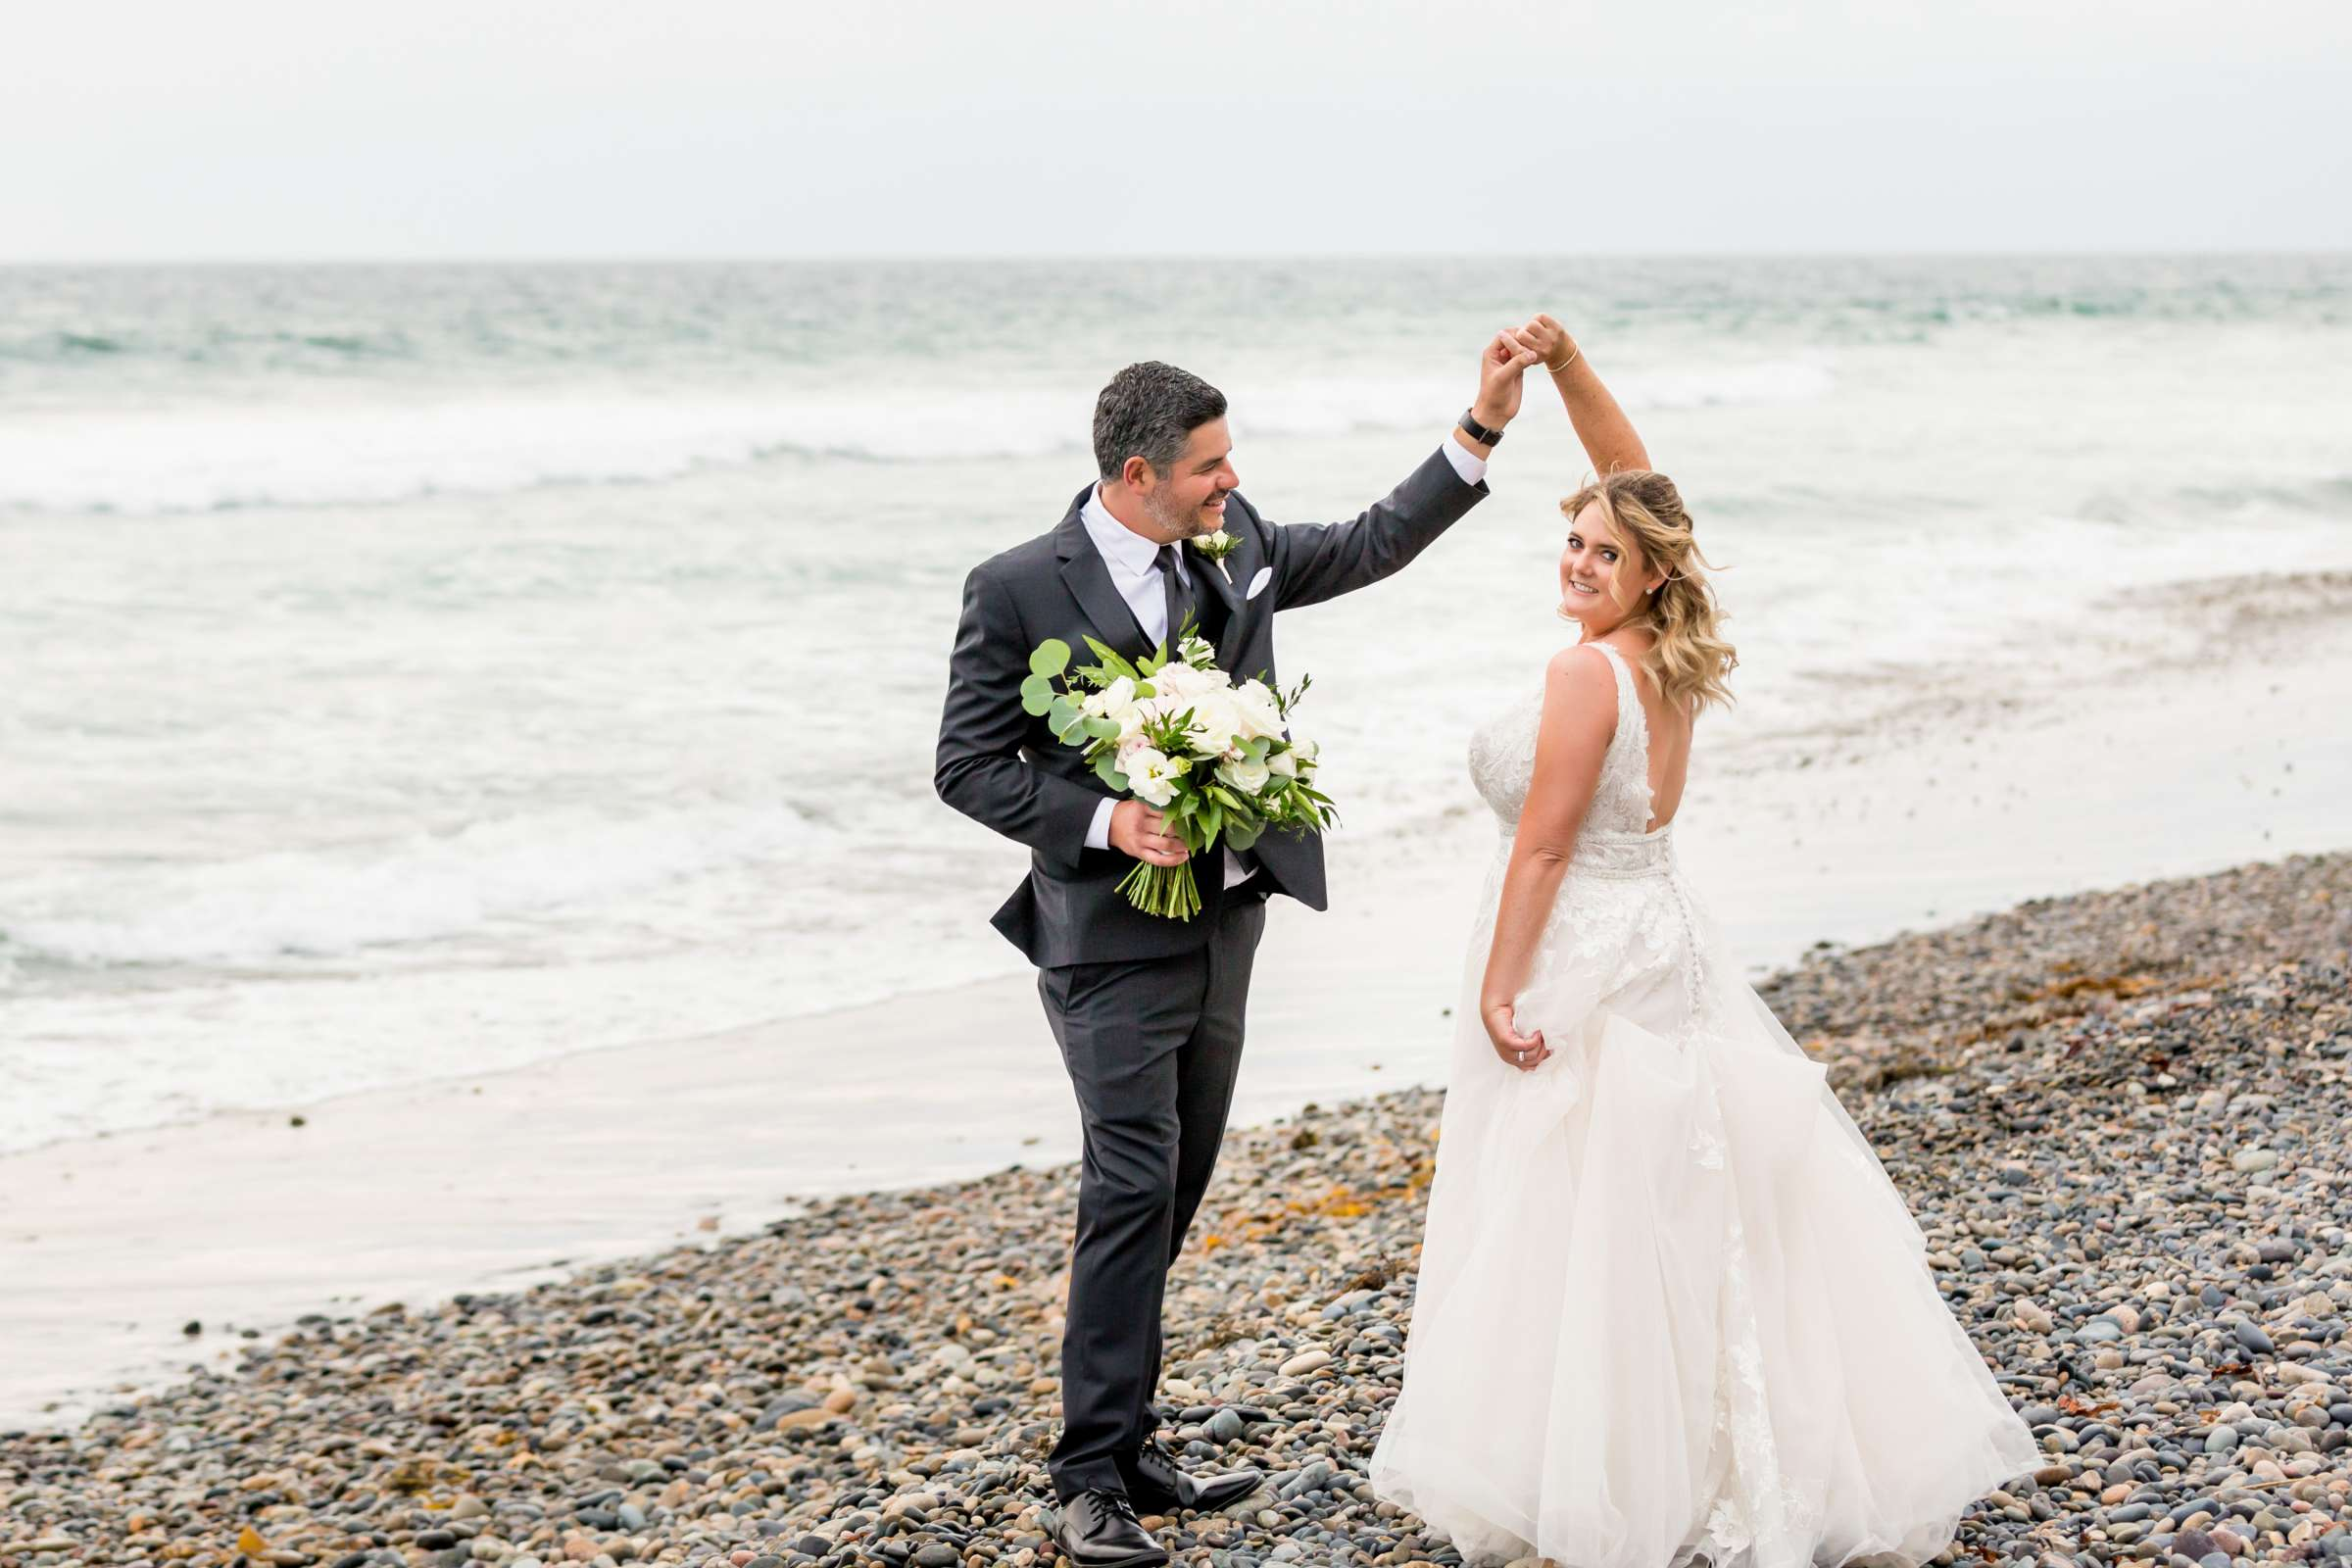 Cape Rey Carlsbad, A Hilton Resort Wedding, Michelle and Justin Wedding Photo #33 by True Photography